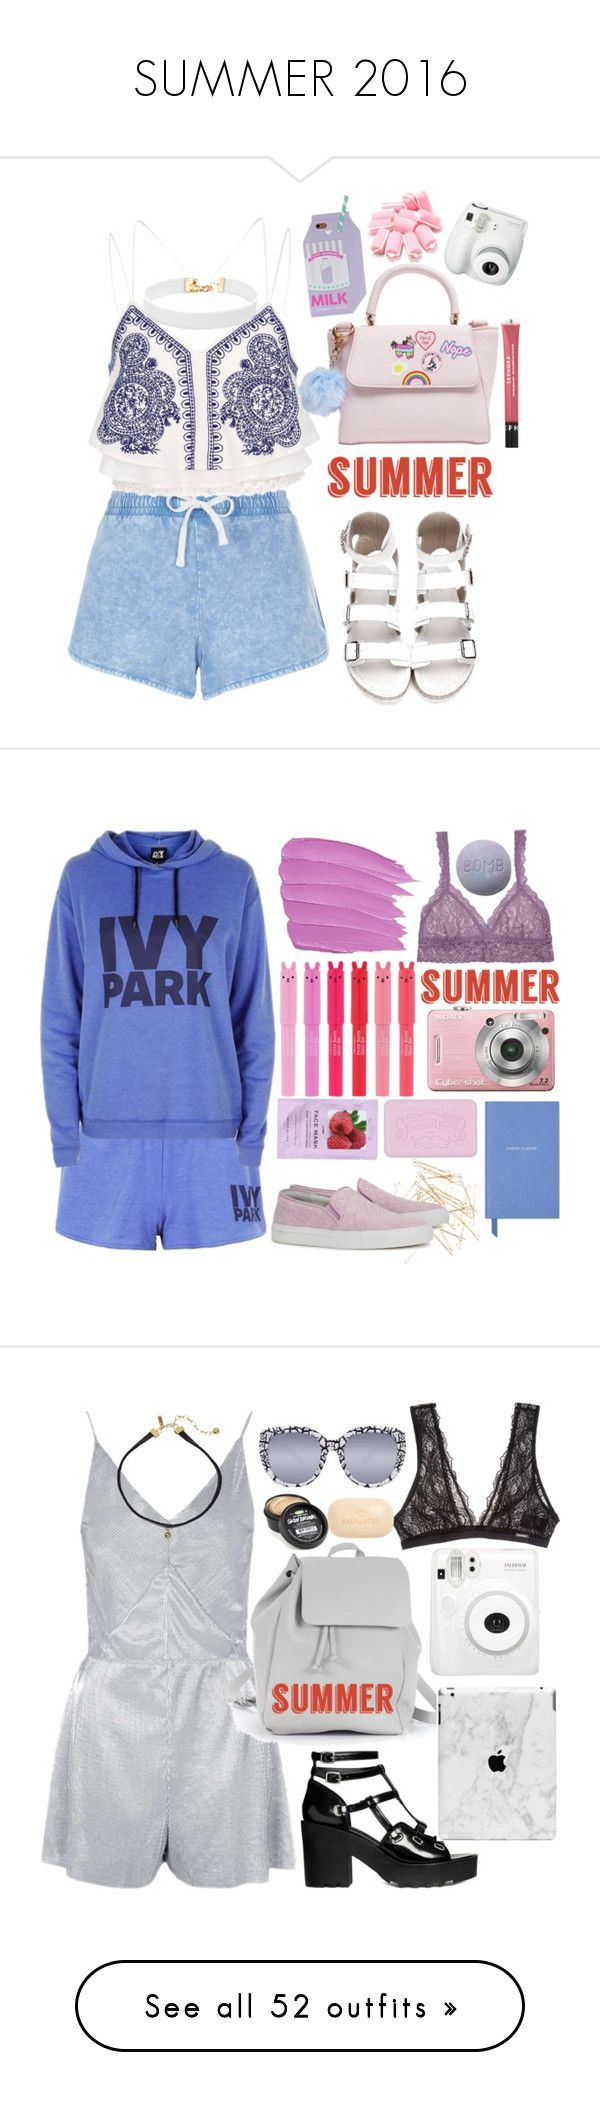 """SUMMER 2016"" by darling-ange1 ❤ liked on Polyvore featuring New Look, River Island, Fujifilm, Vanessa Mooney, Sephora Collection, Topshop, Hanky Panky, Monki, Axel Arigato and H&M"